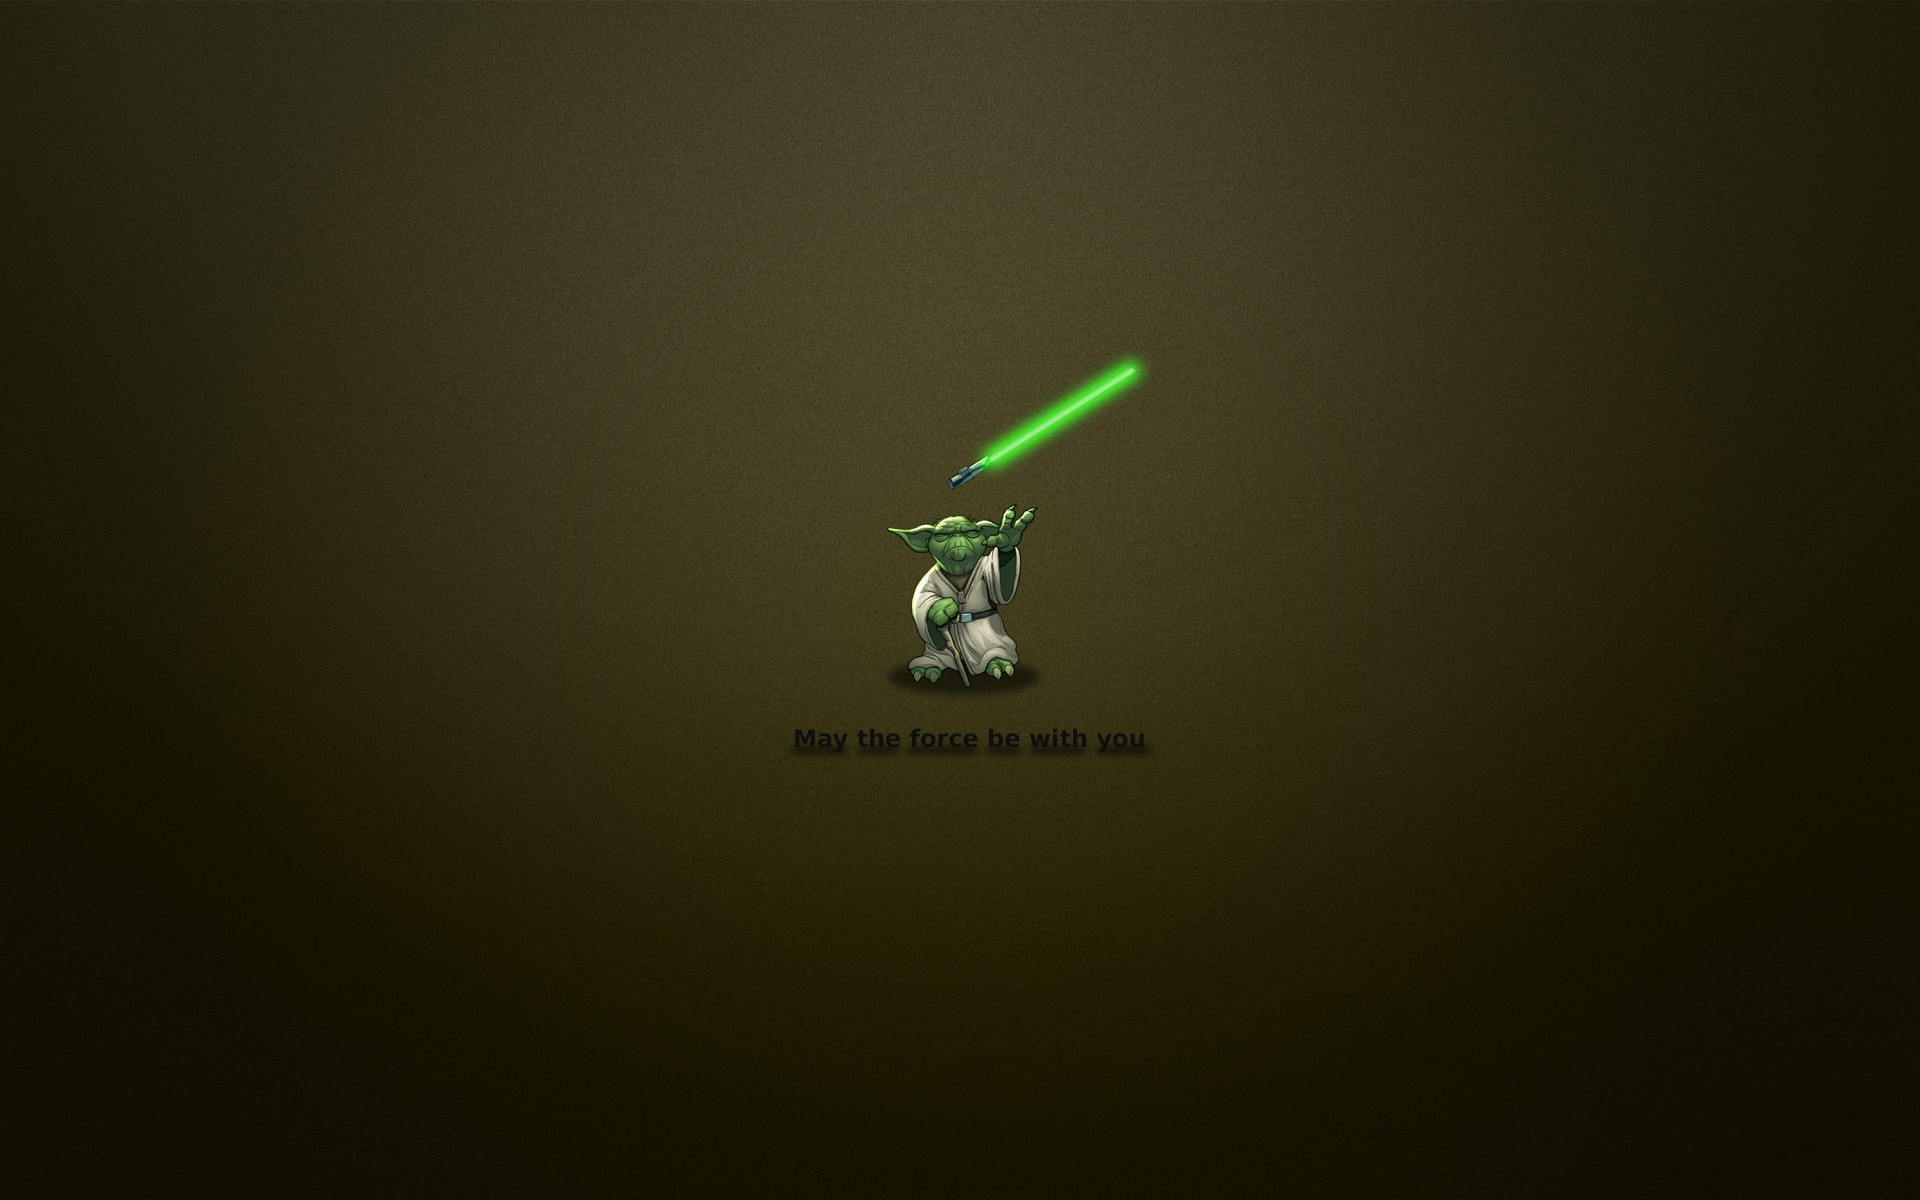 Master Yoda Quote Wallpaper 1920x1200